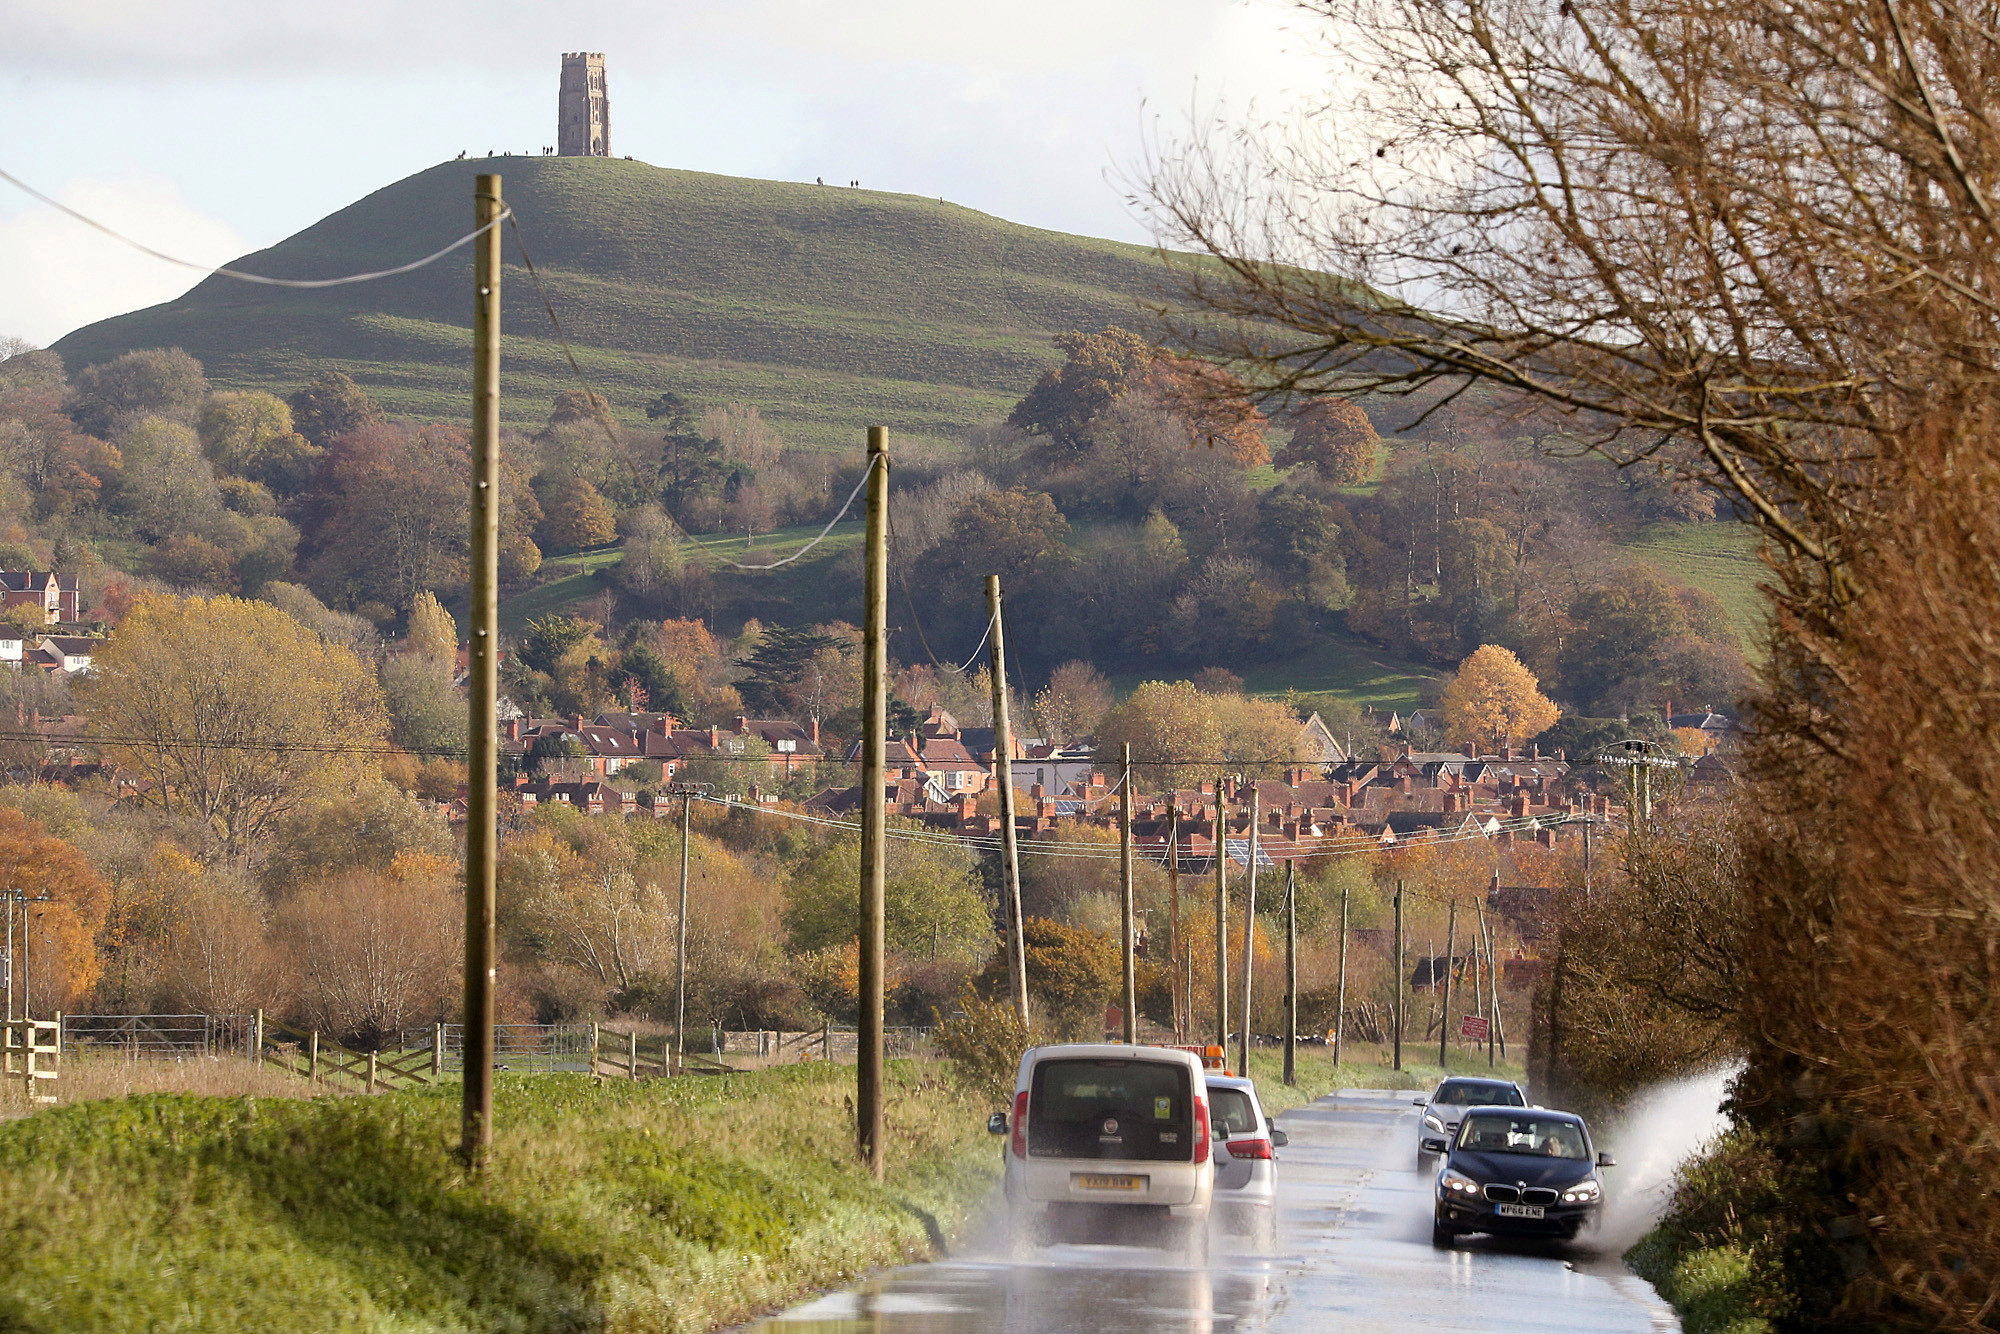 Drivers near Glastonbury Tor battled the flooded roads after the River Brue overflowed